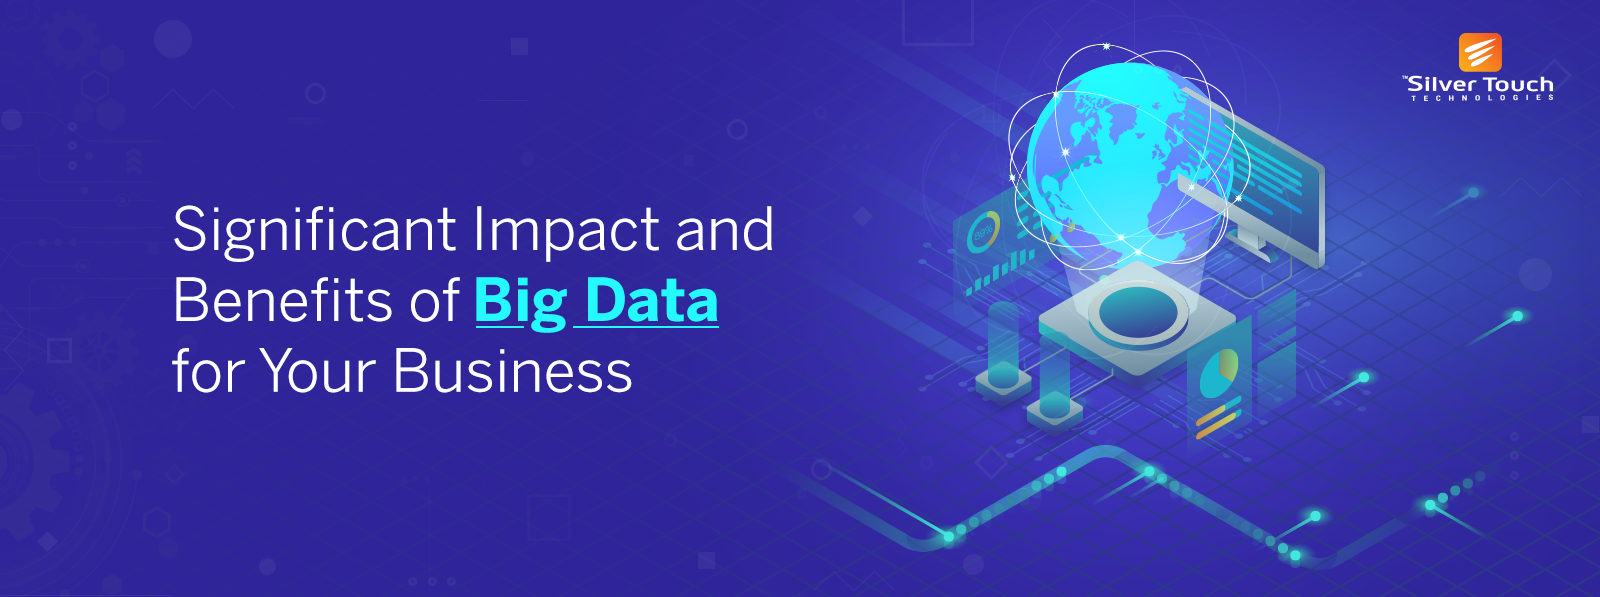 Significant-Impact-and-Benefits-of-Big-Data-for-Your-Business